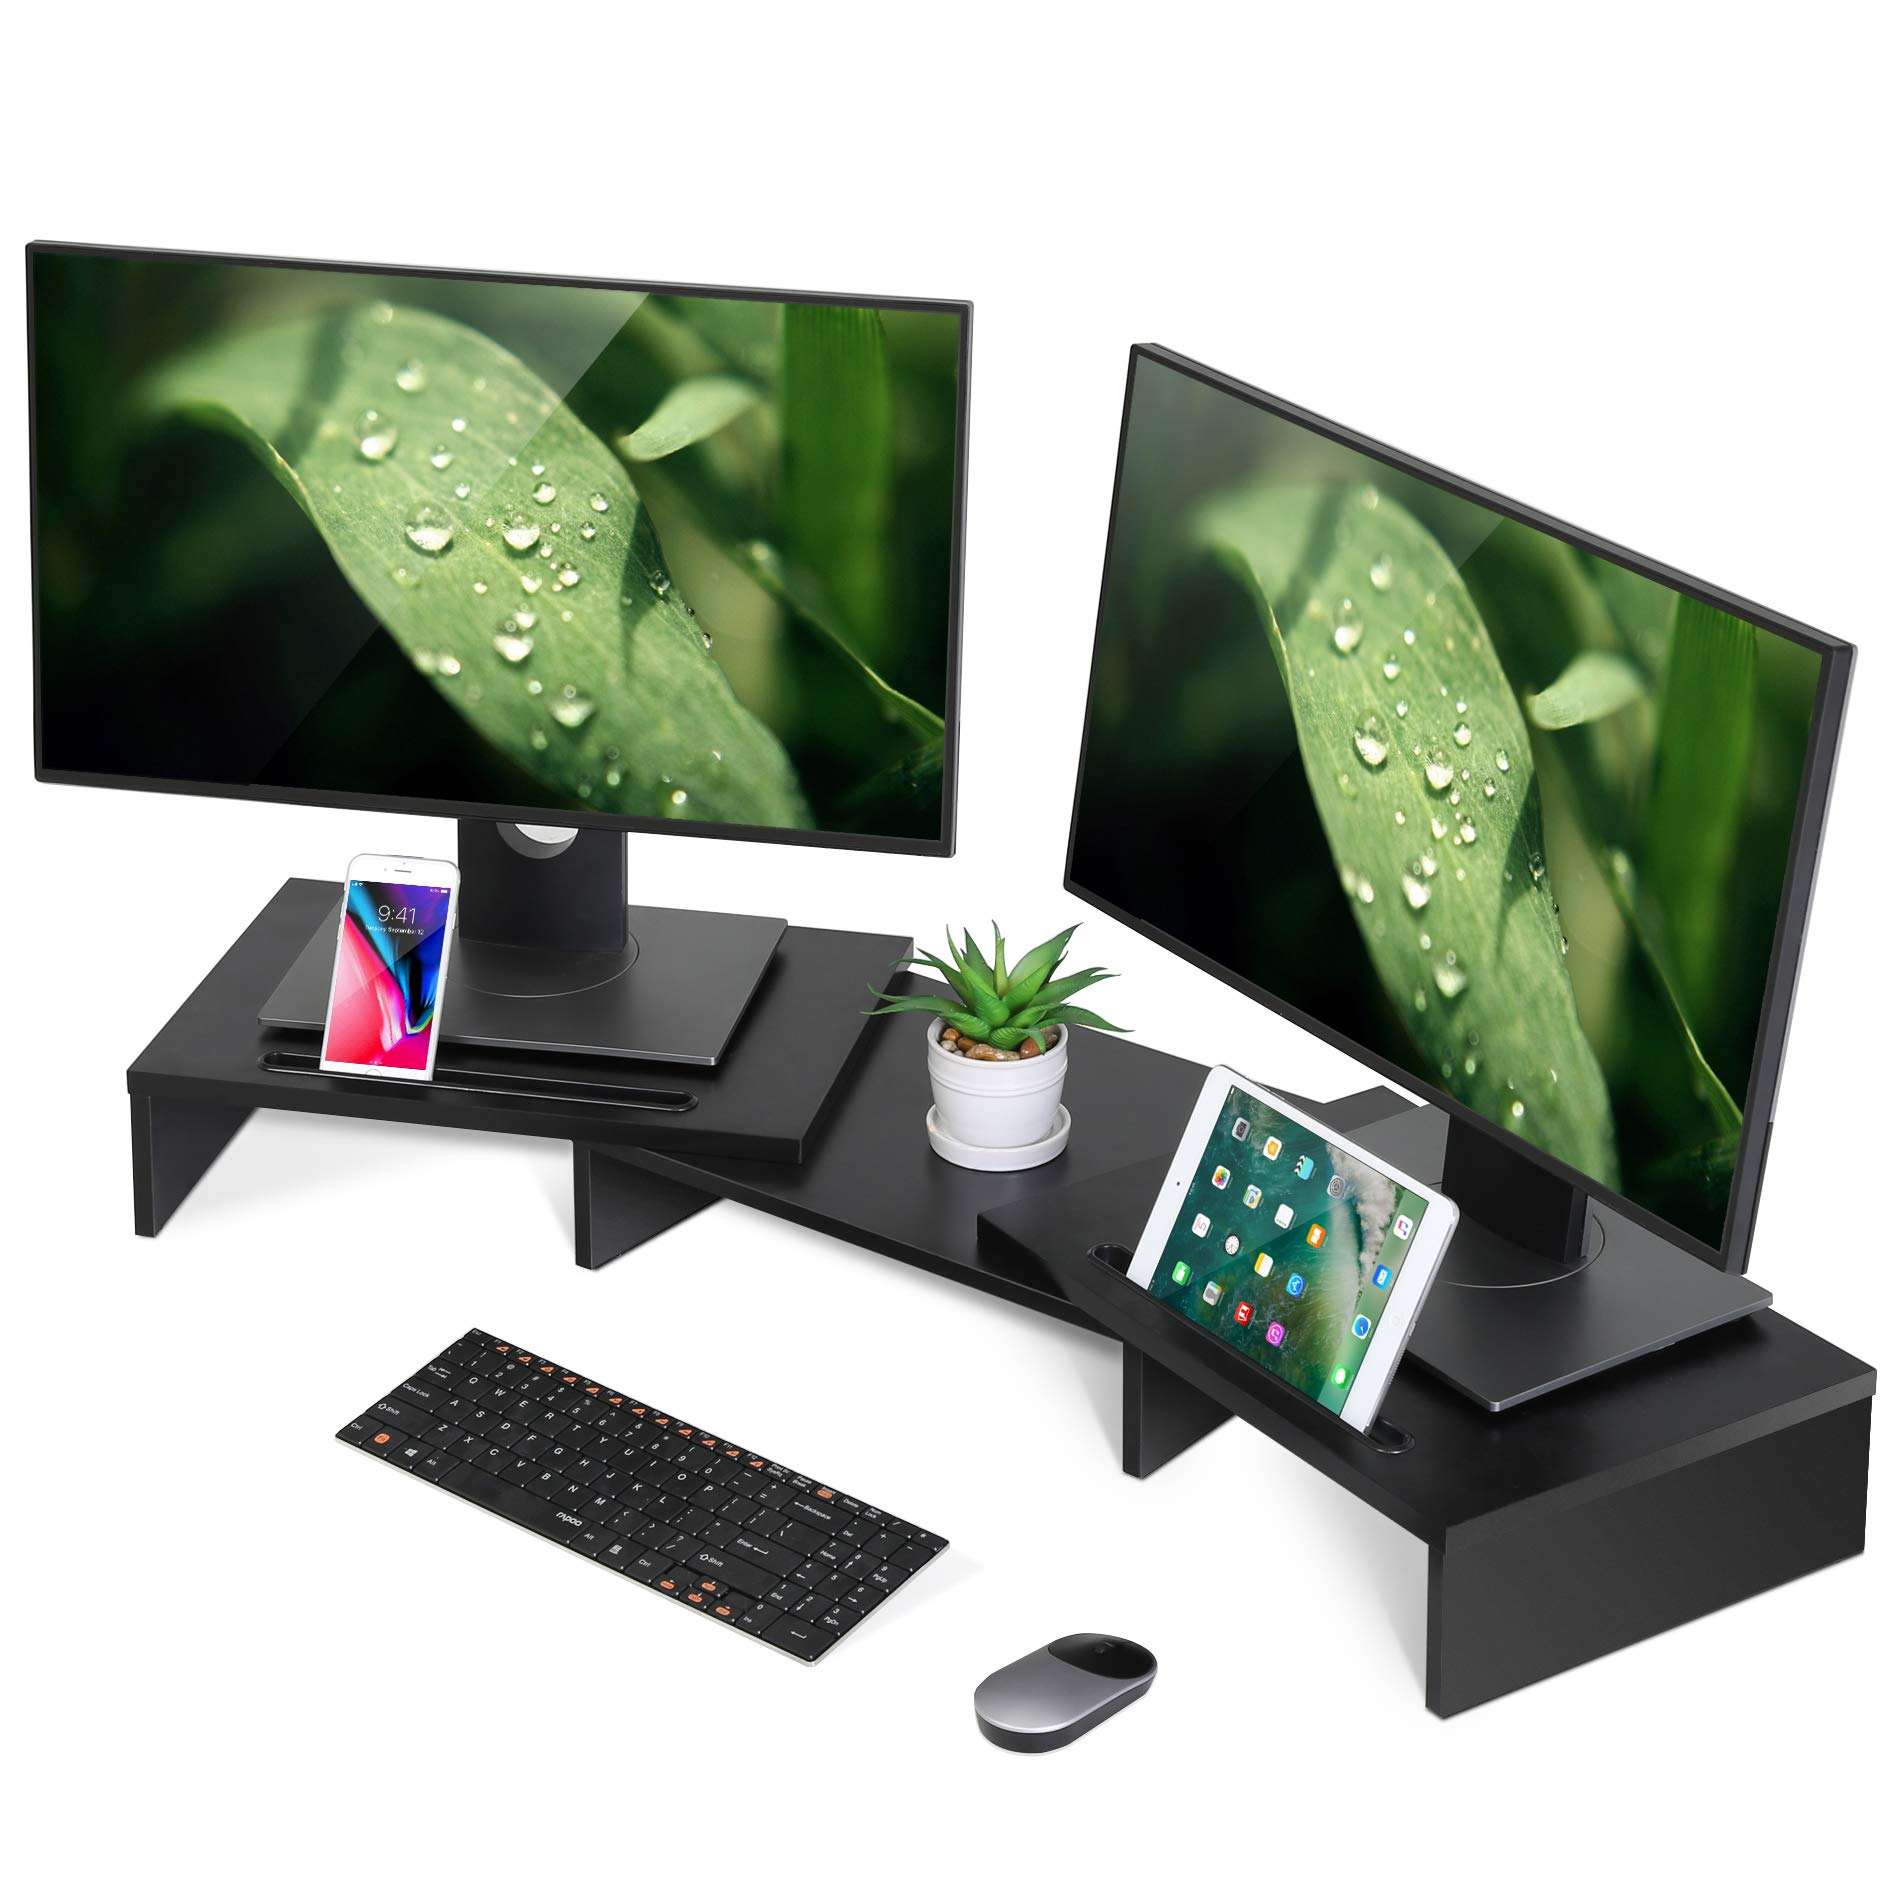 FITUEYES Computer Monitor Riser Desktop Laptop Stand Length Angle Adjustable Speaker PC Stand DT111101WB by FITUEYES